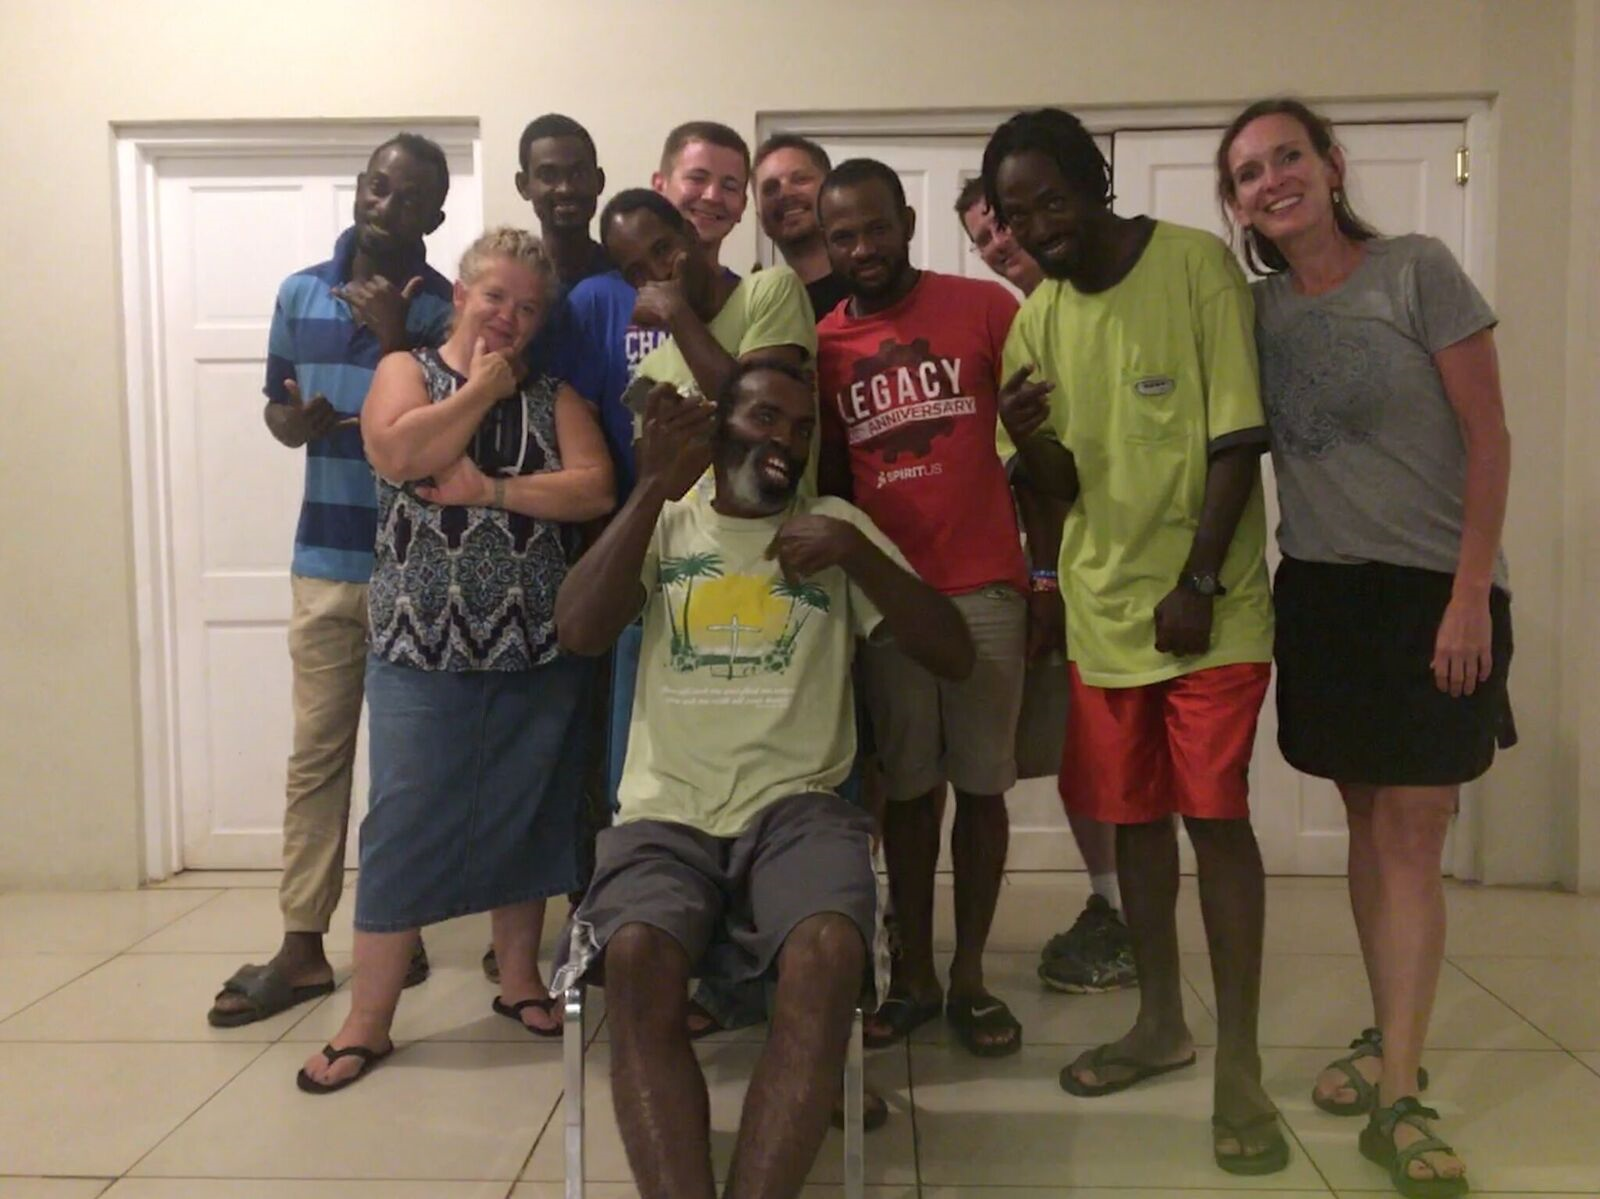 jamaica group photo.png